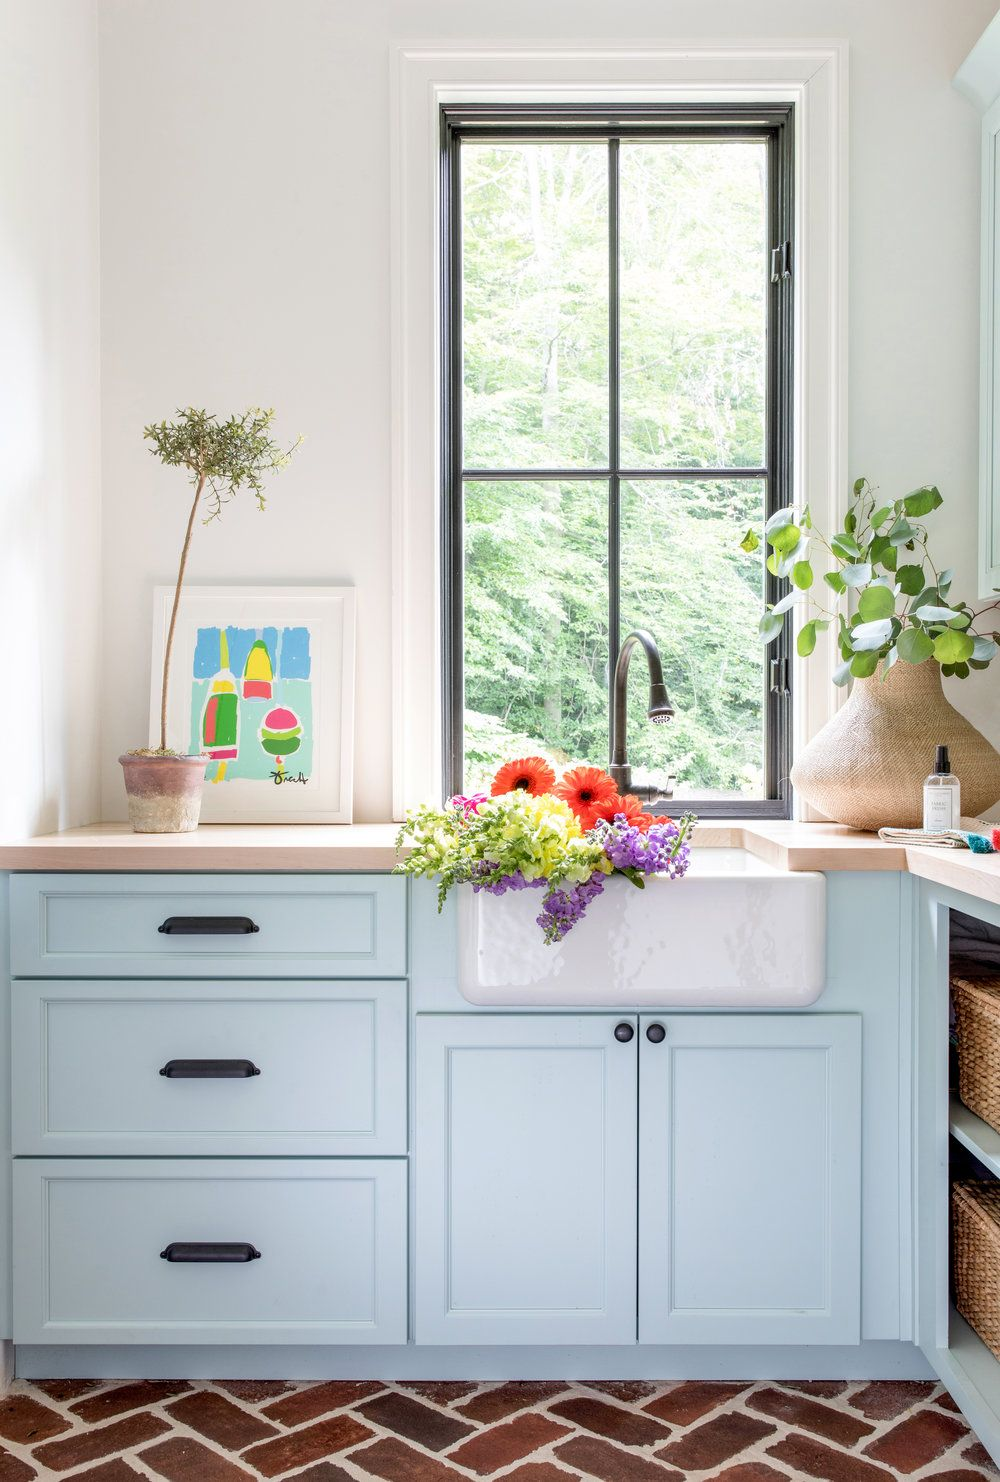 10x10 Laundry Room Layout: Pin On Beauties Of Life